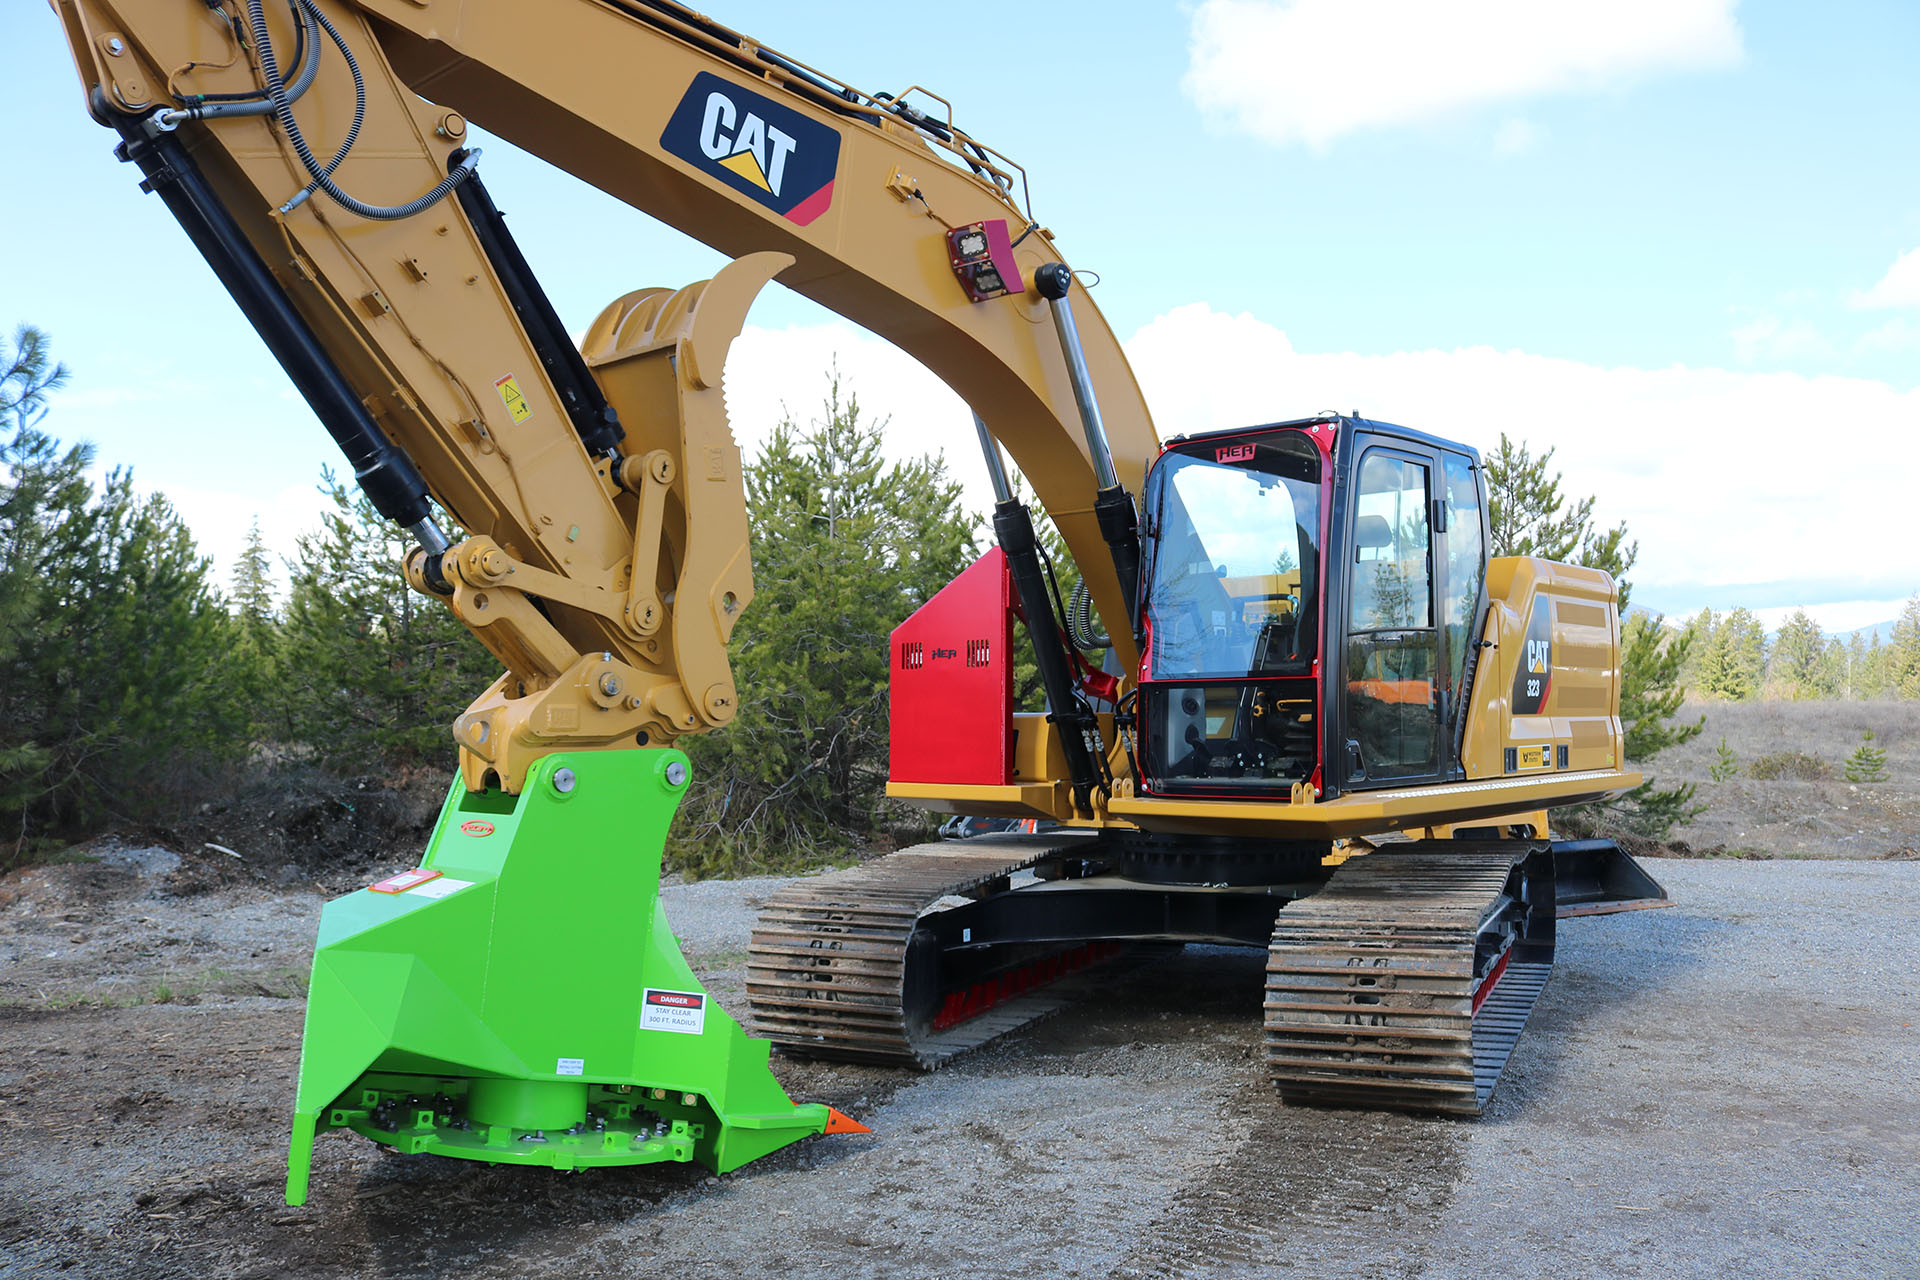 Caterpillar 323 Next Generation with Ballistic Window